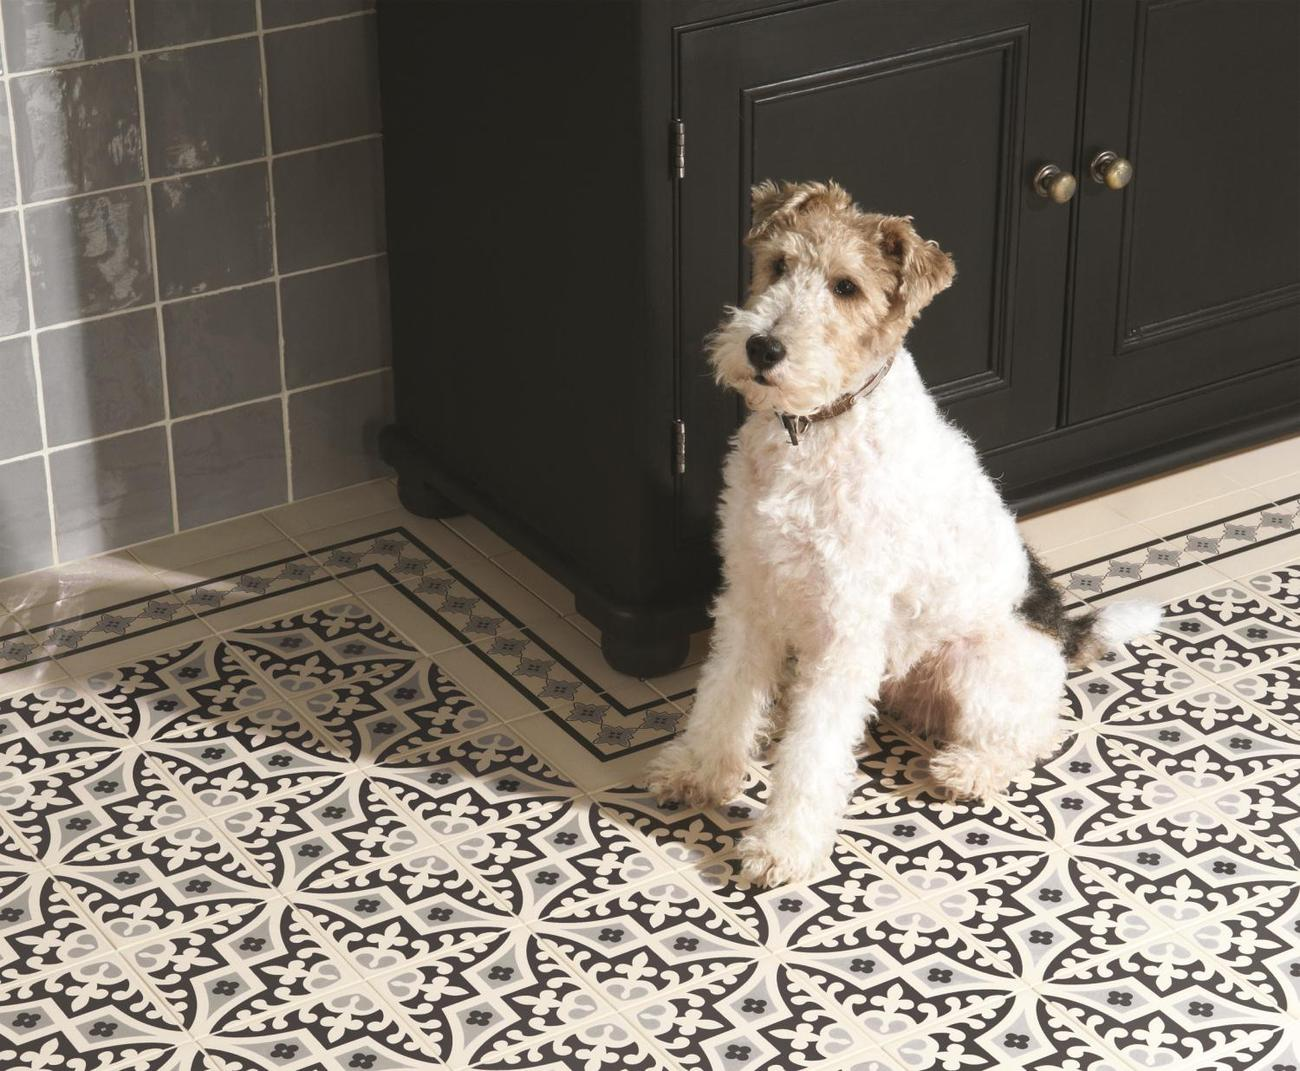 Odyssey Patterned Tiles